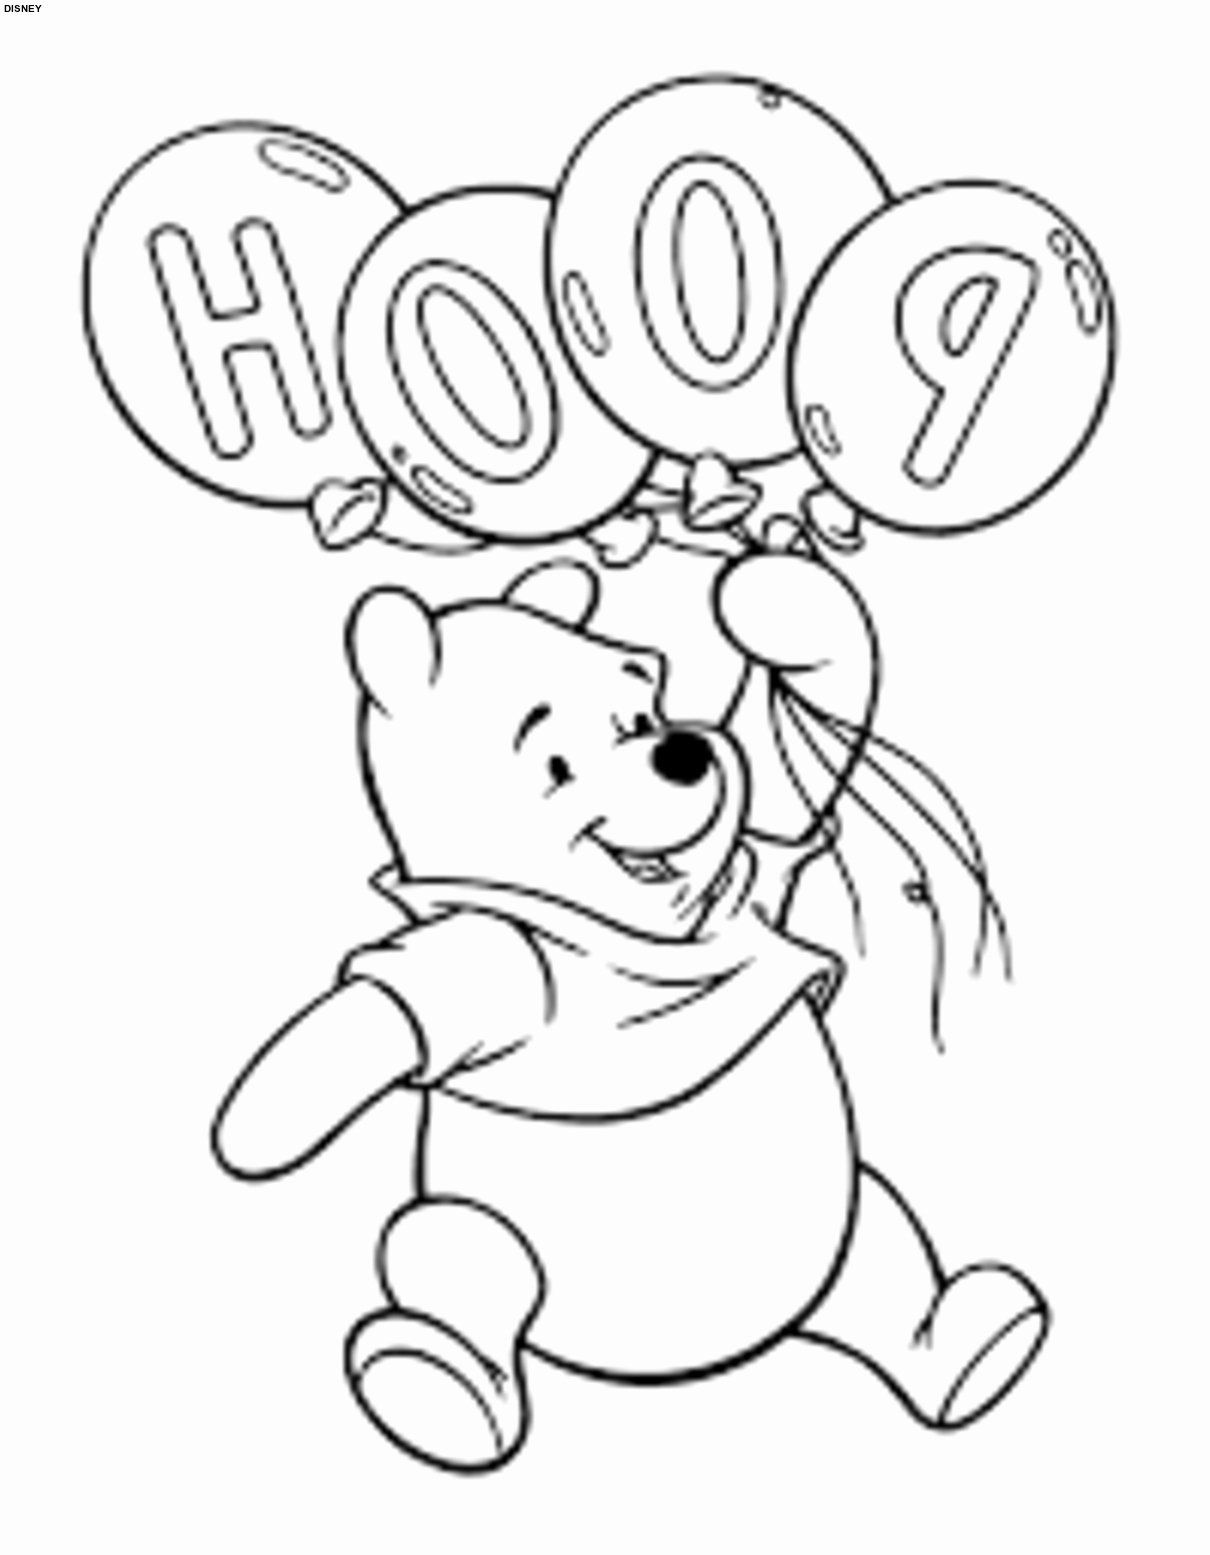 Coloring Cartoon Network Games Lovely Cartoons For Drawing At Getdrawings Cartoon Coloring Pages Disney Coloring Pages Girl Cartoon Characters